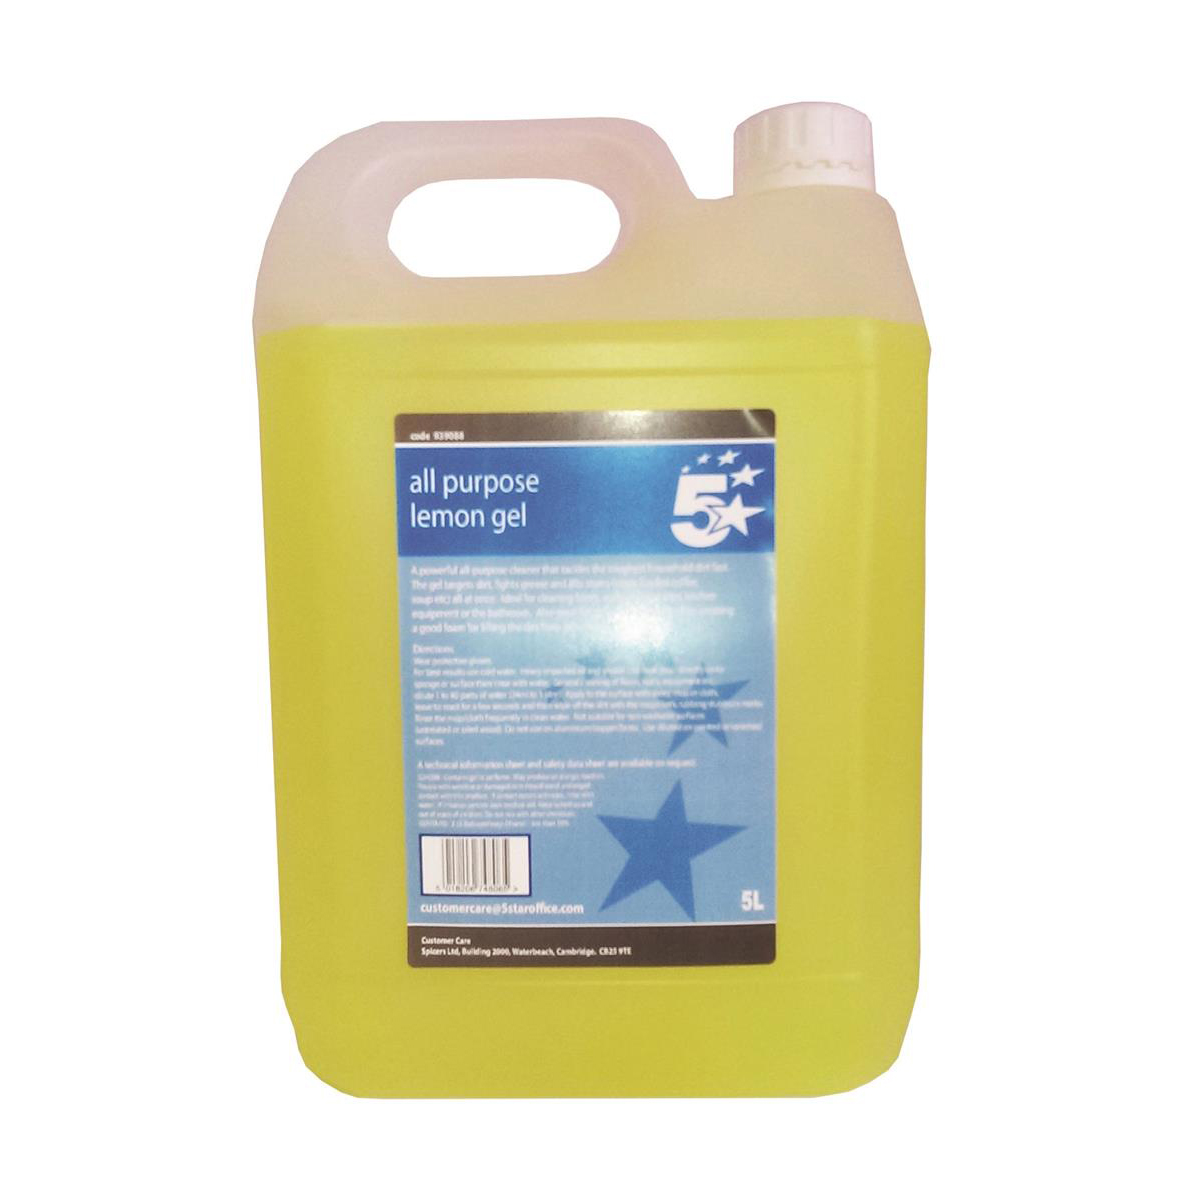 Multipurpose Cleaning 5 Star Facilities All Purpose Lemon Cleaning Gel 5 Litre